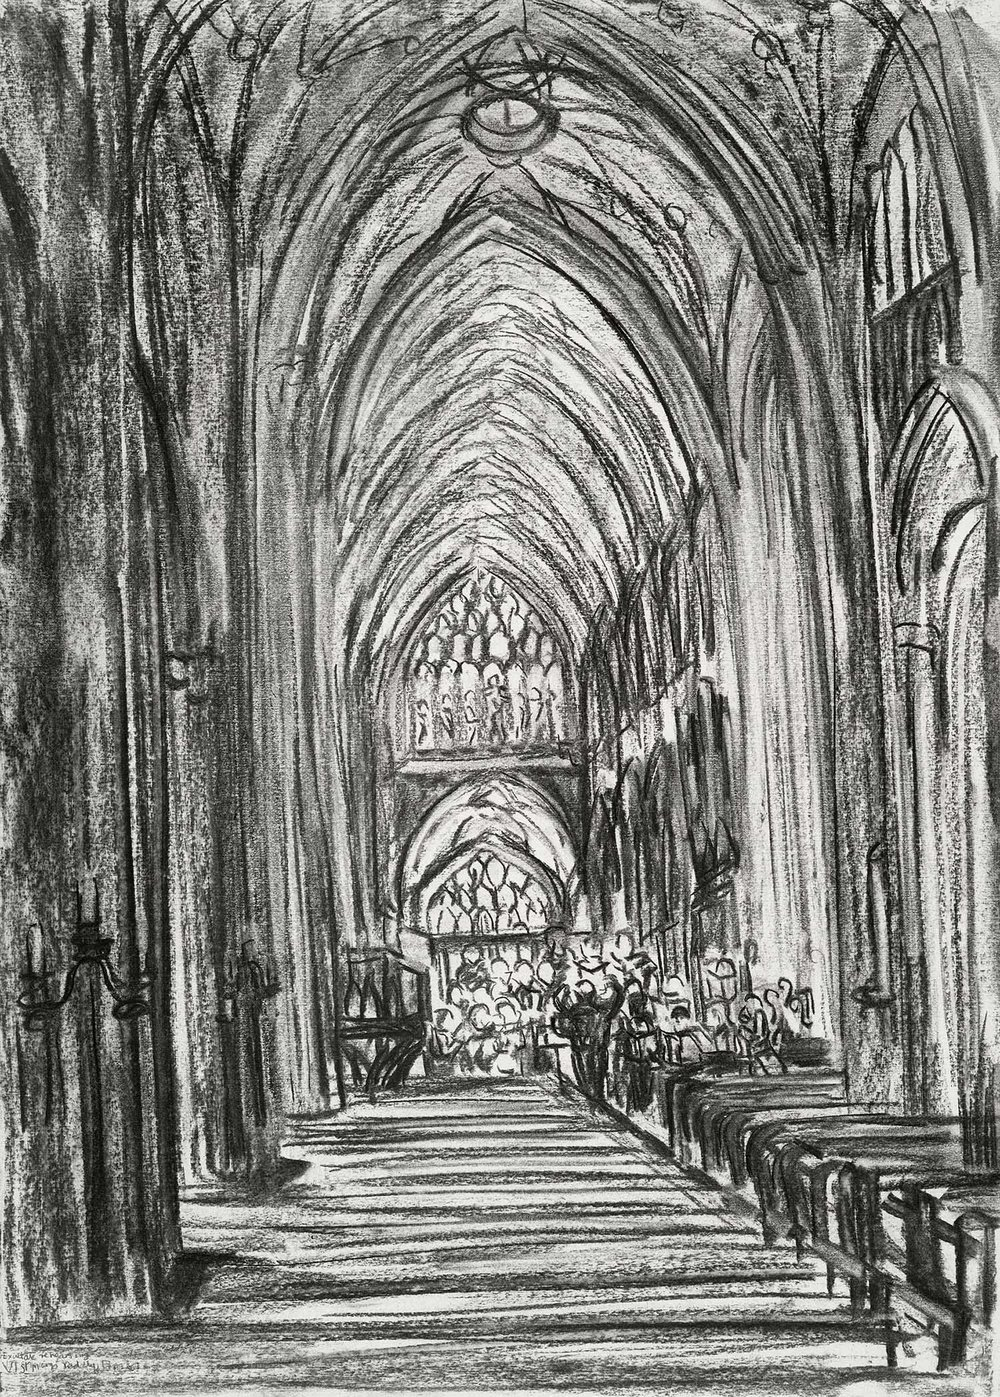 Exultate Singers Rehearsal at St Mary Redcliffe Bristol , Charcoal on paper, 59 x 42 cm